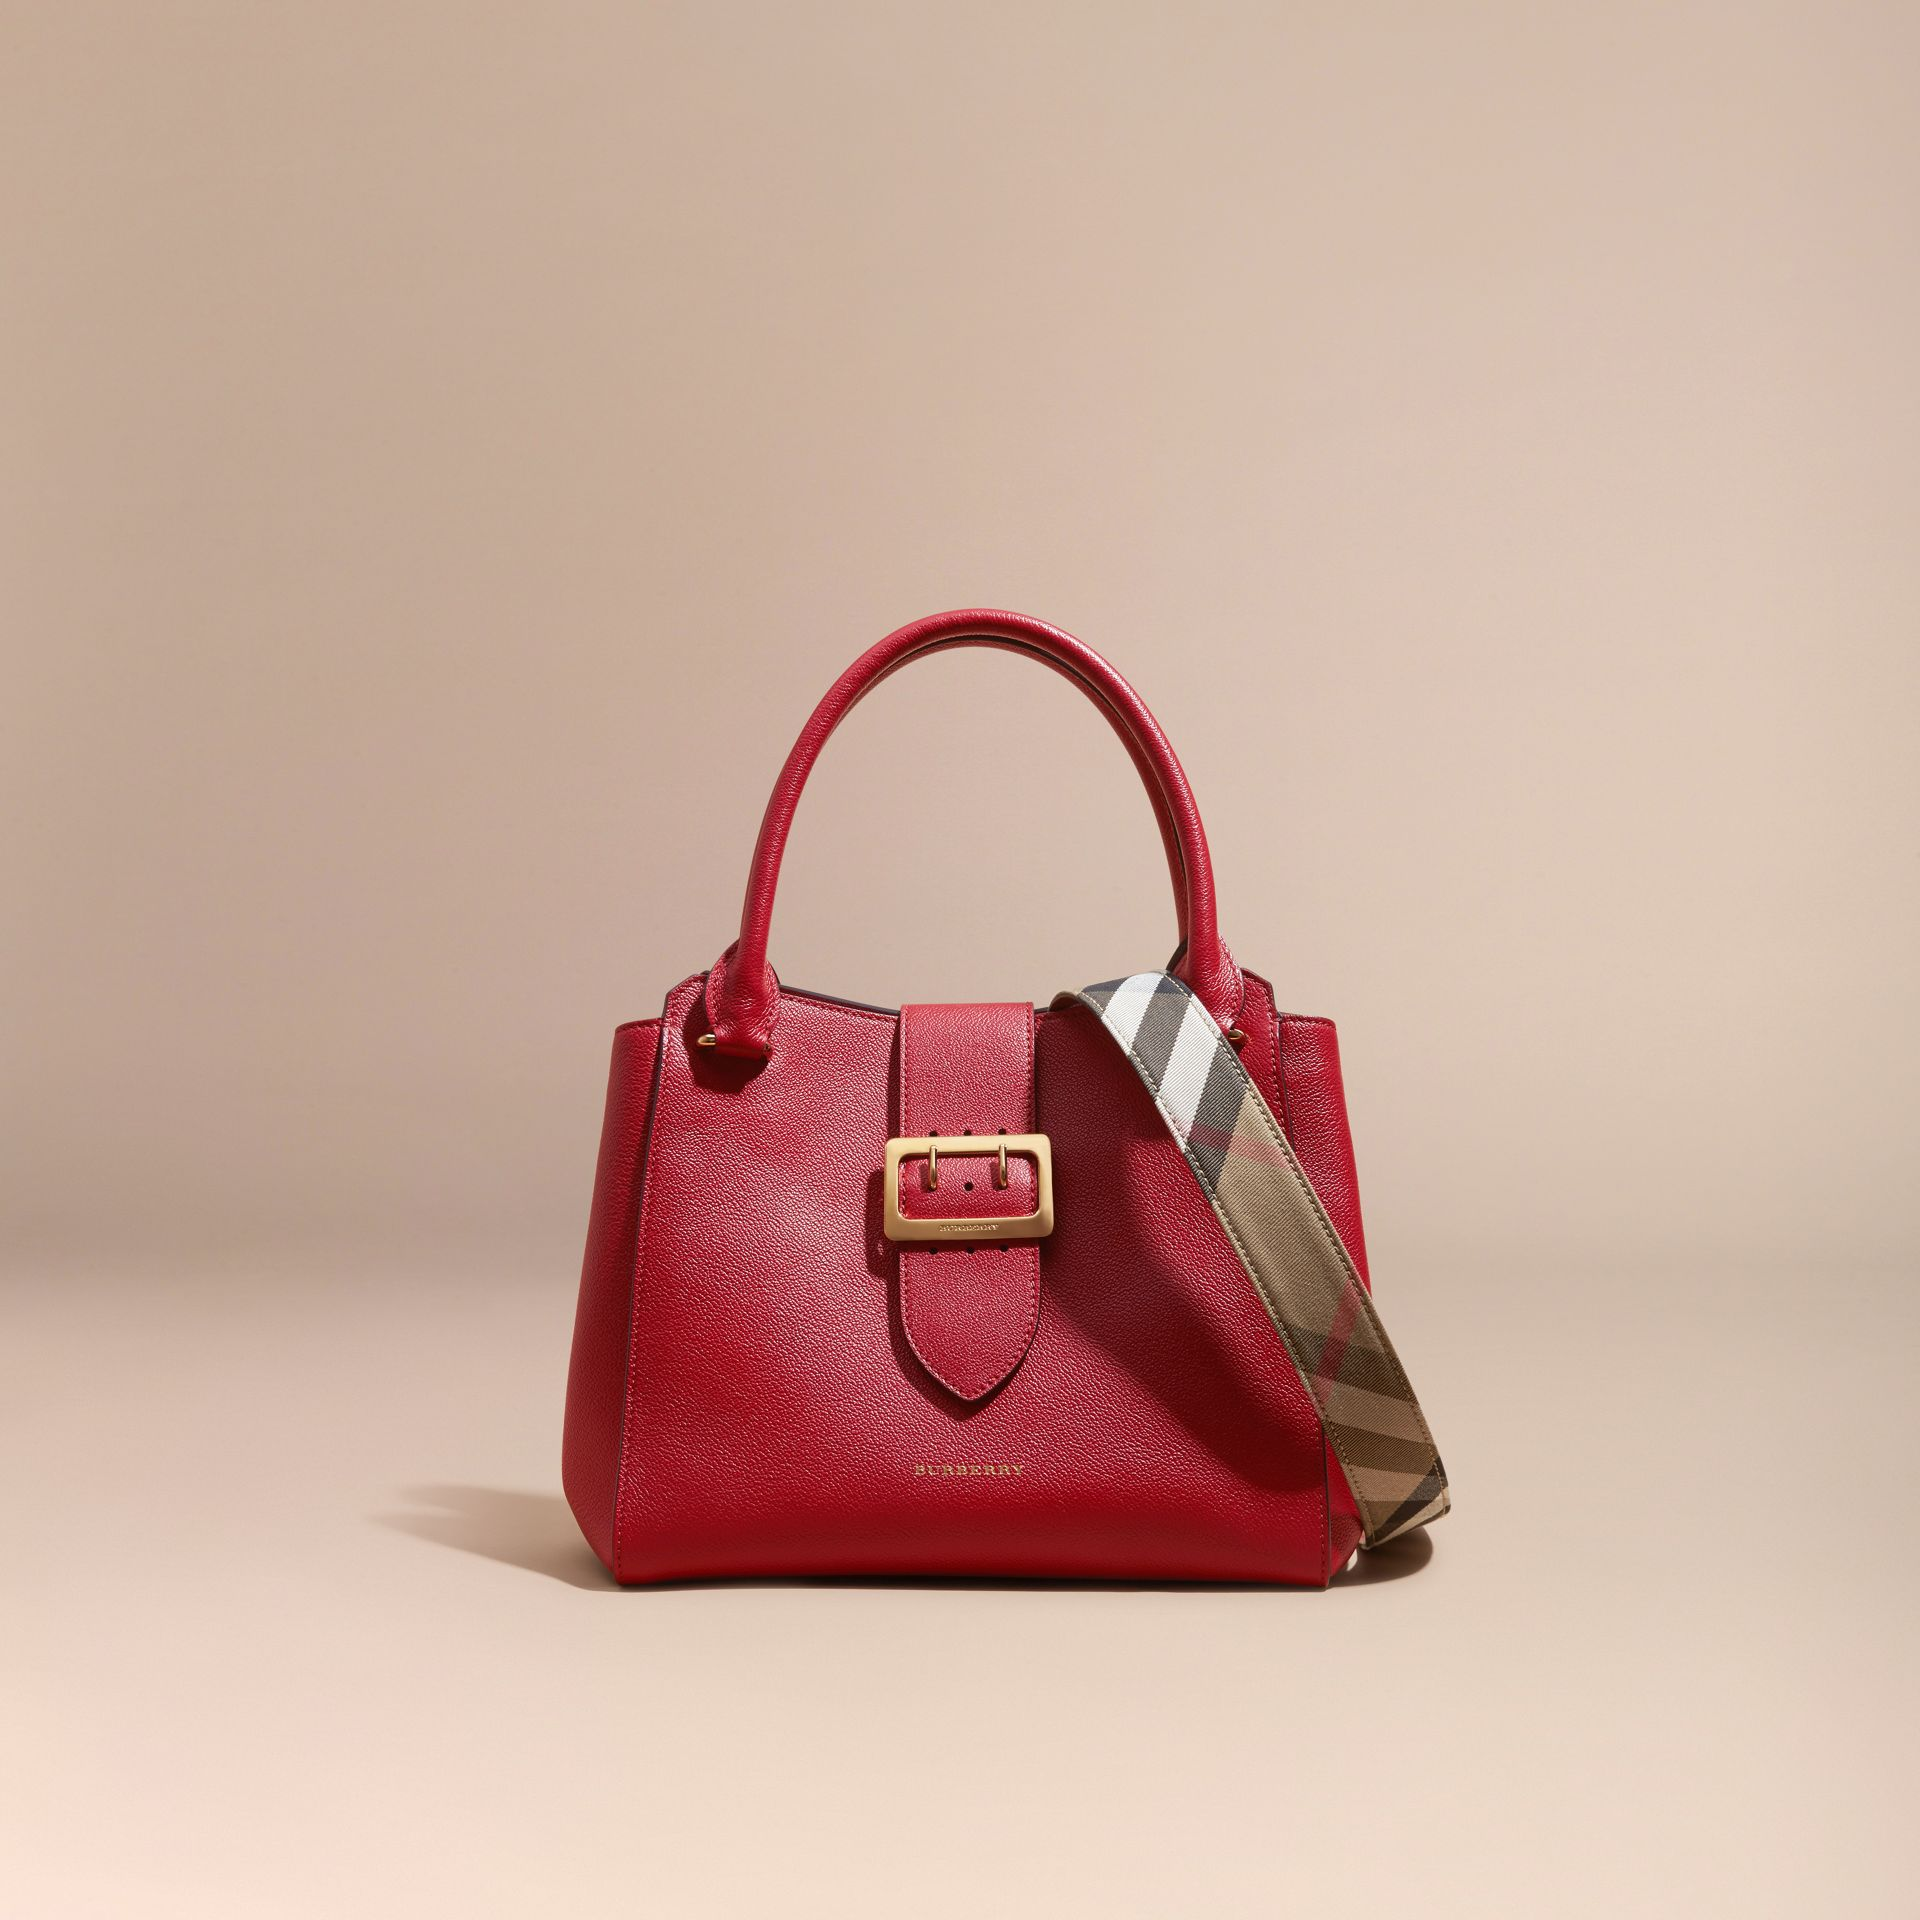 Parade red The Medium Buckle Tote in Grainy Leather Parade Red - gallery image 9